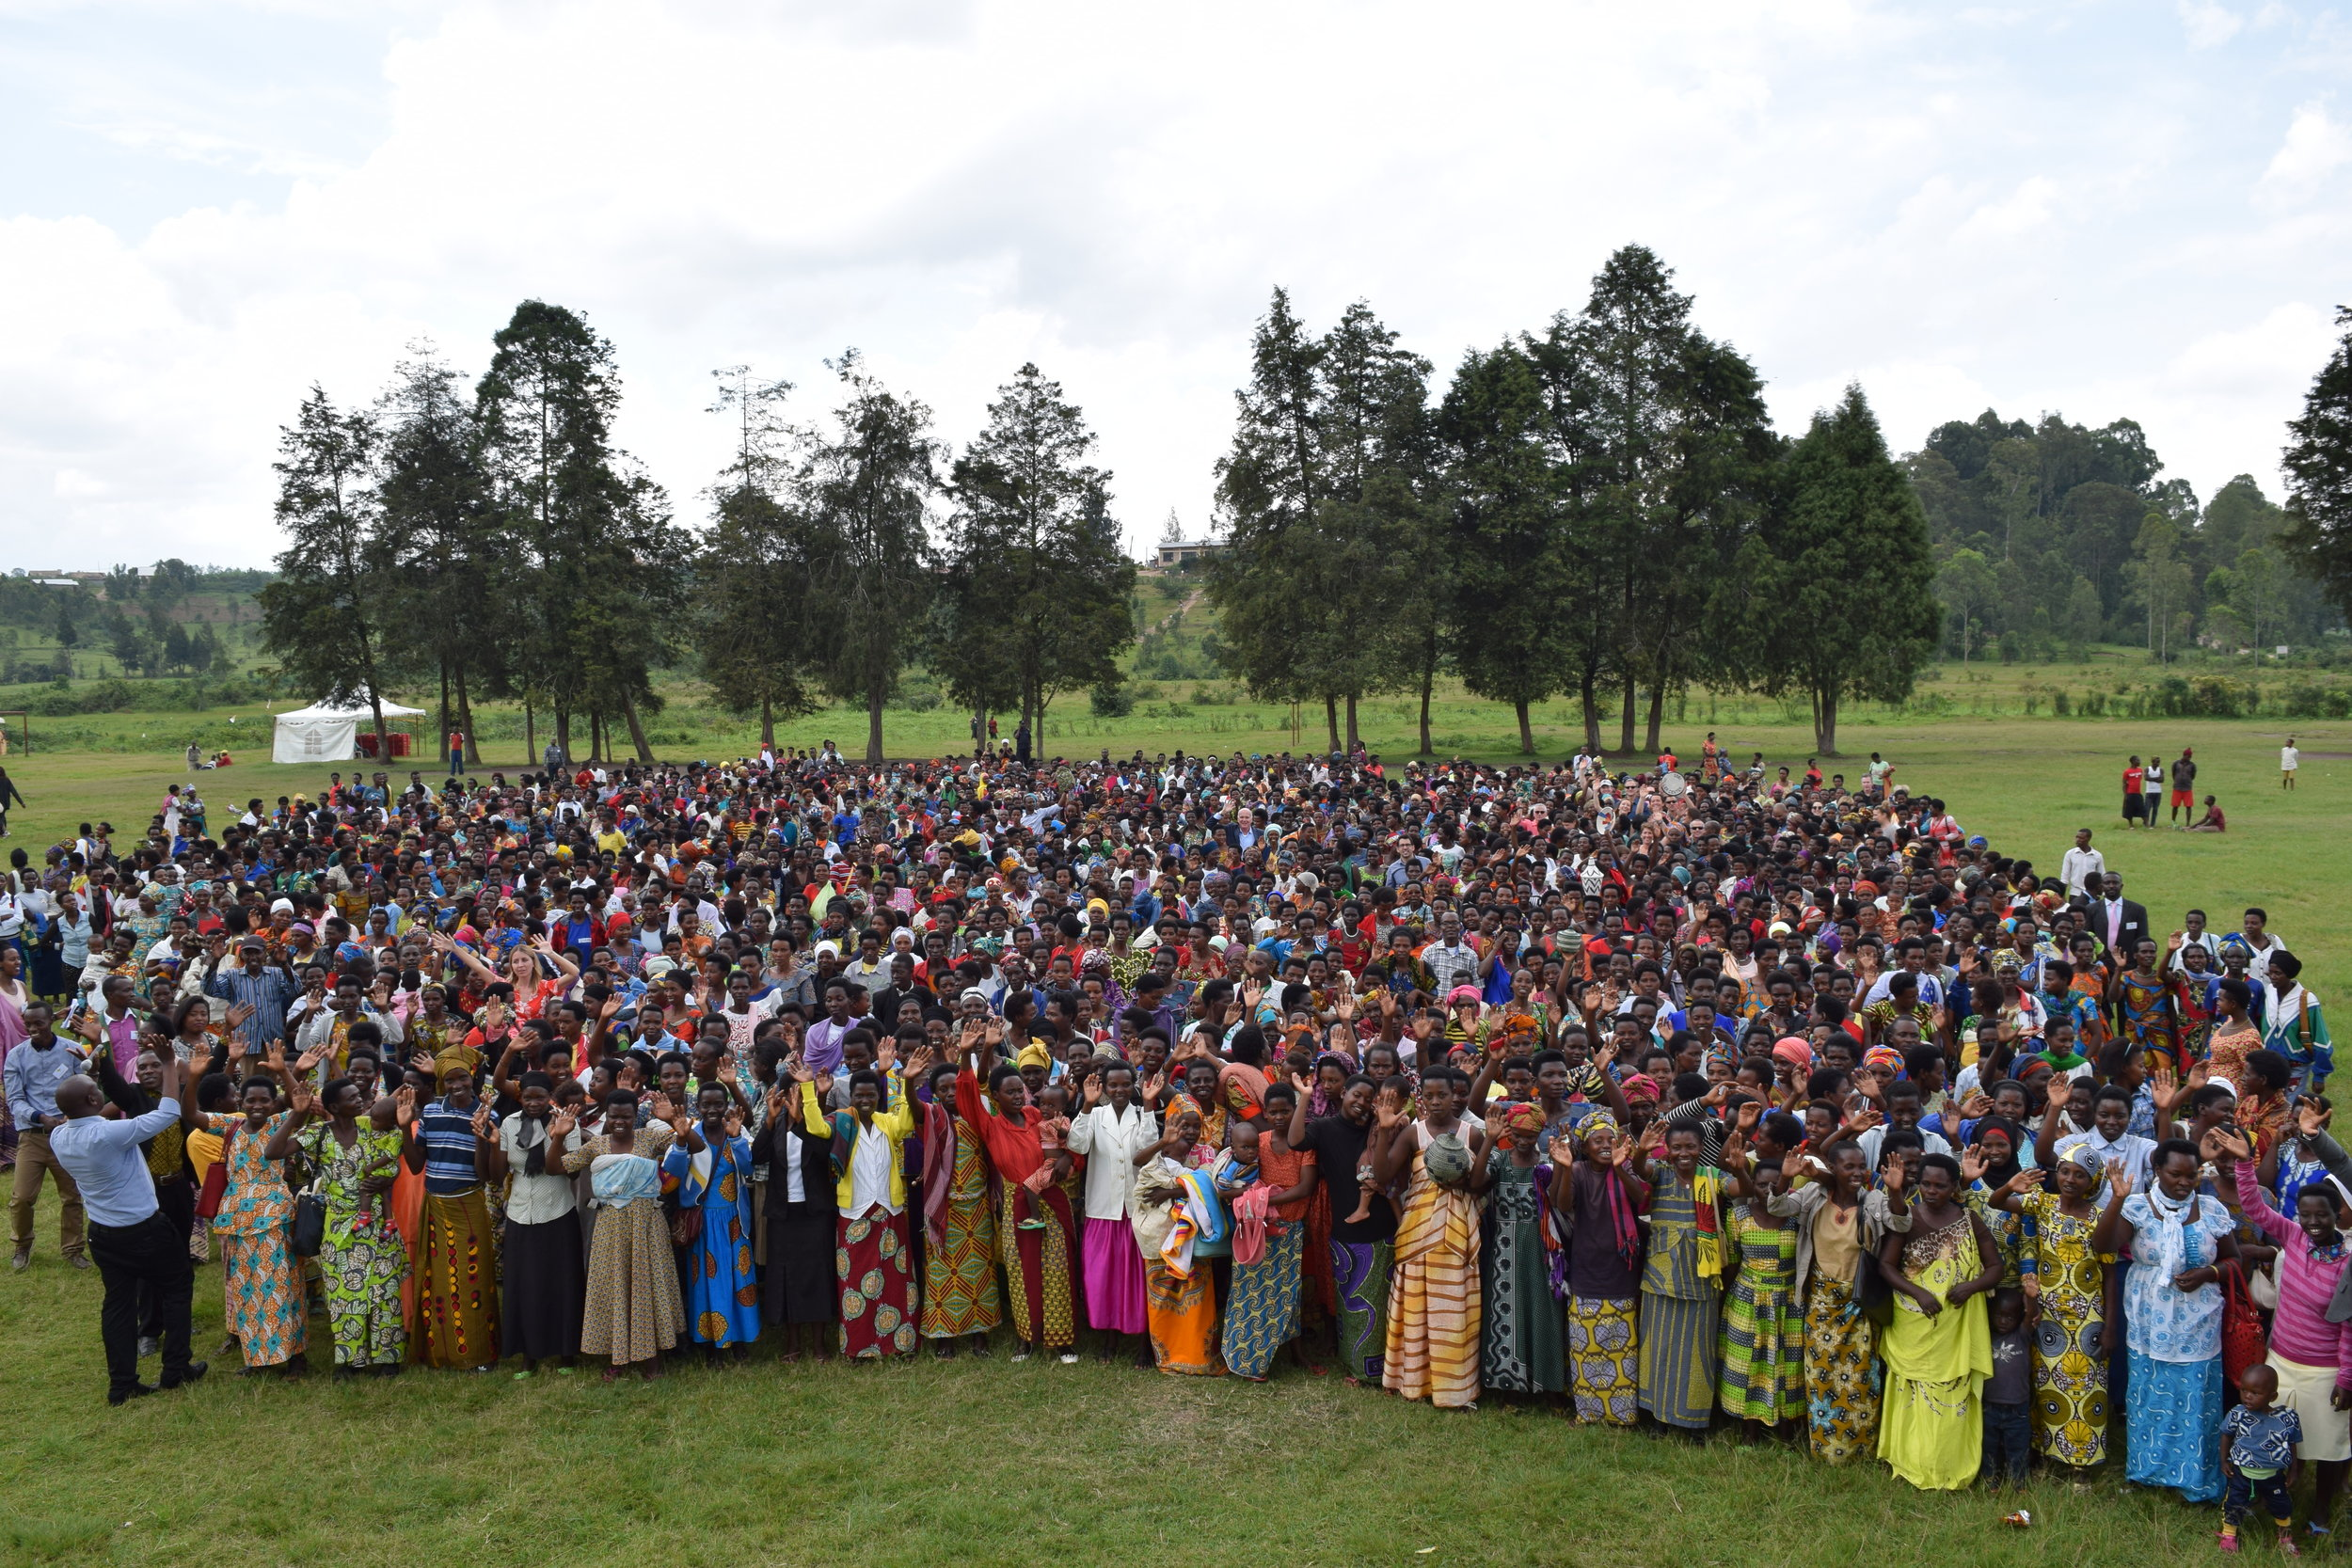 All Across Africa's annual meeting of women's cooperatives: over 1,800 artisans came together to celebrate escape from poverty and hope for Rwanda's future.